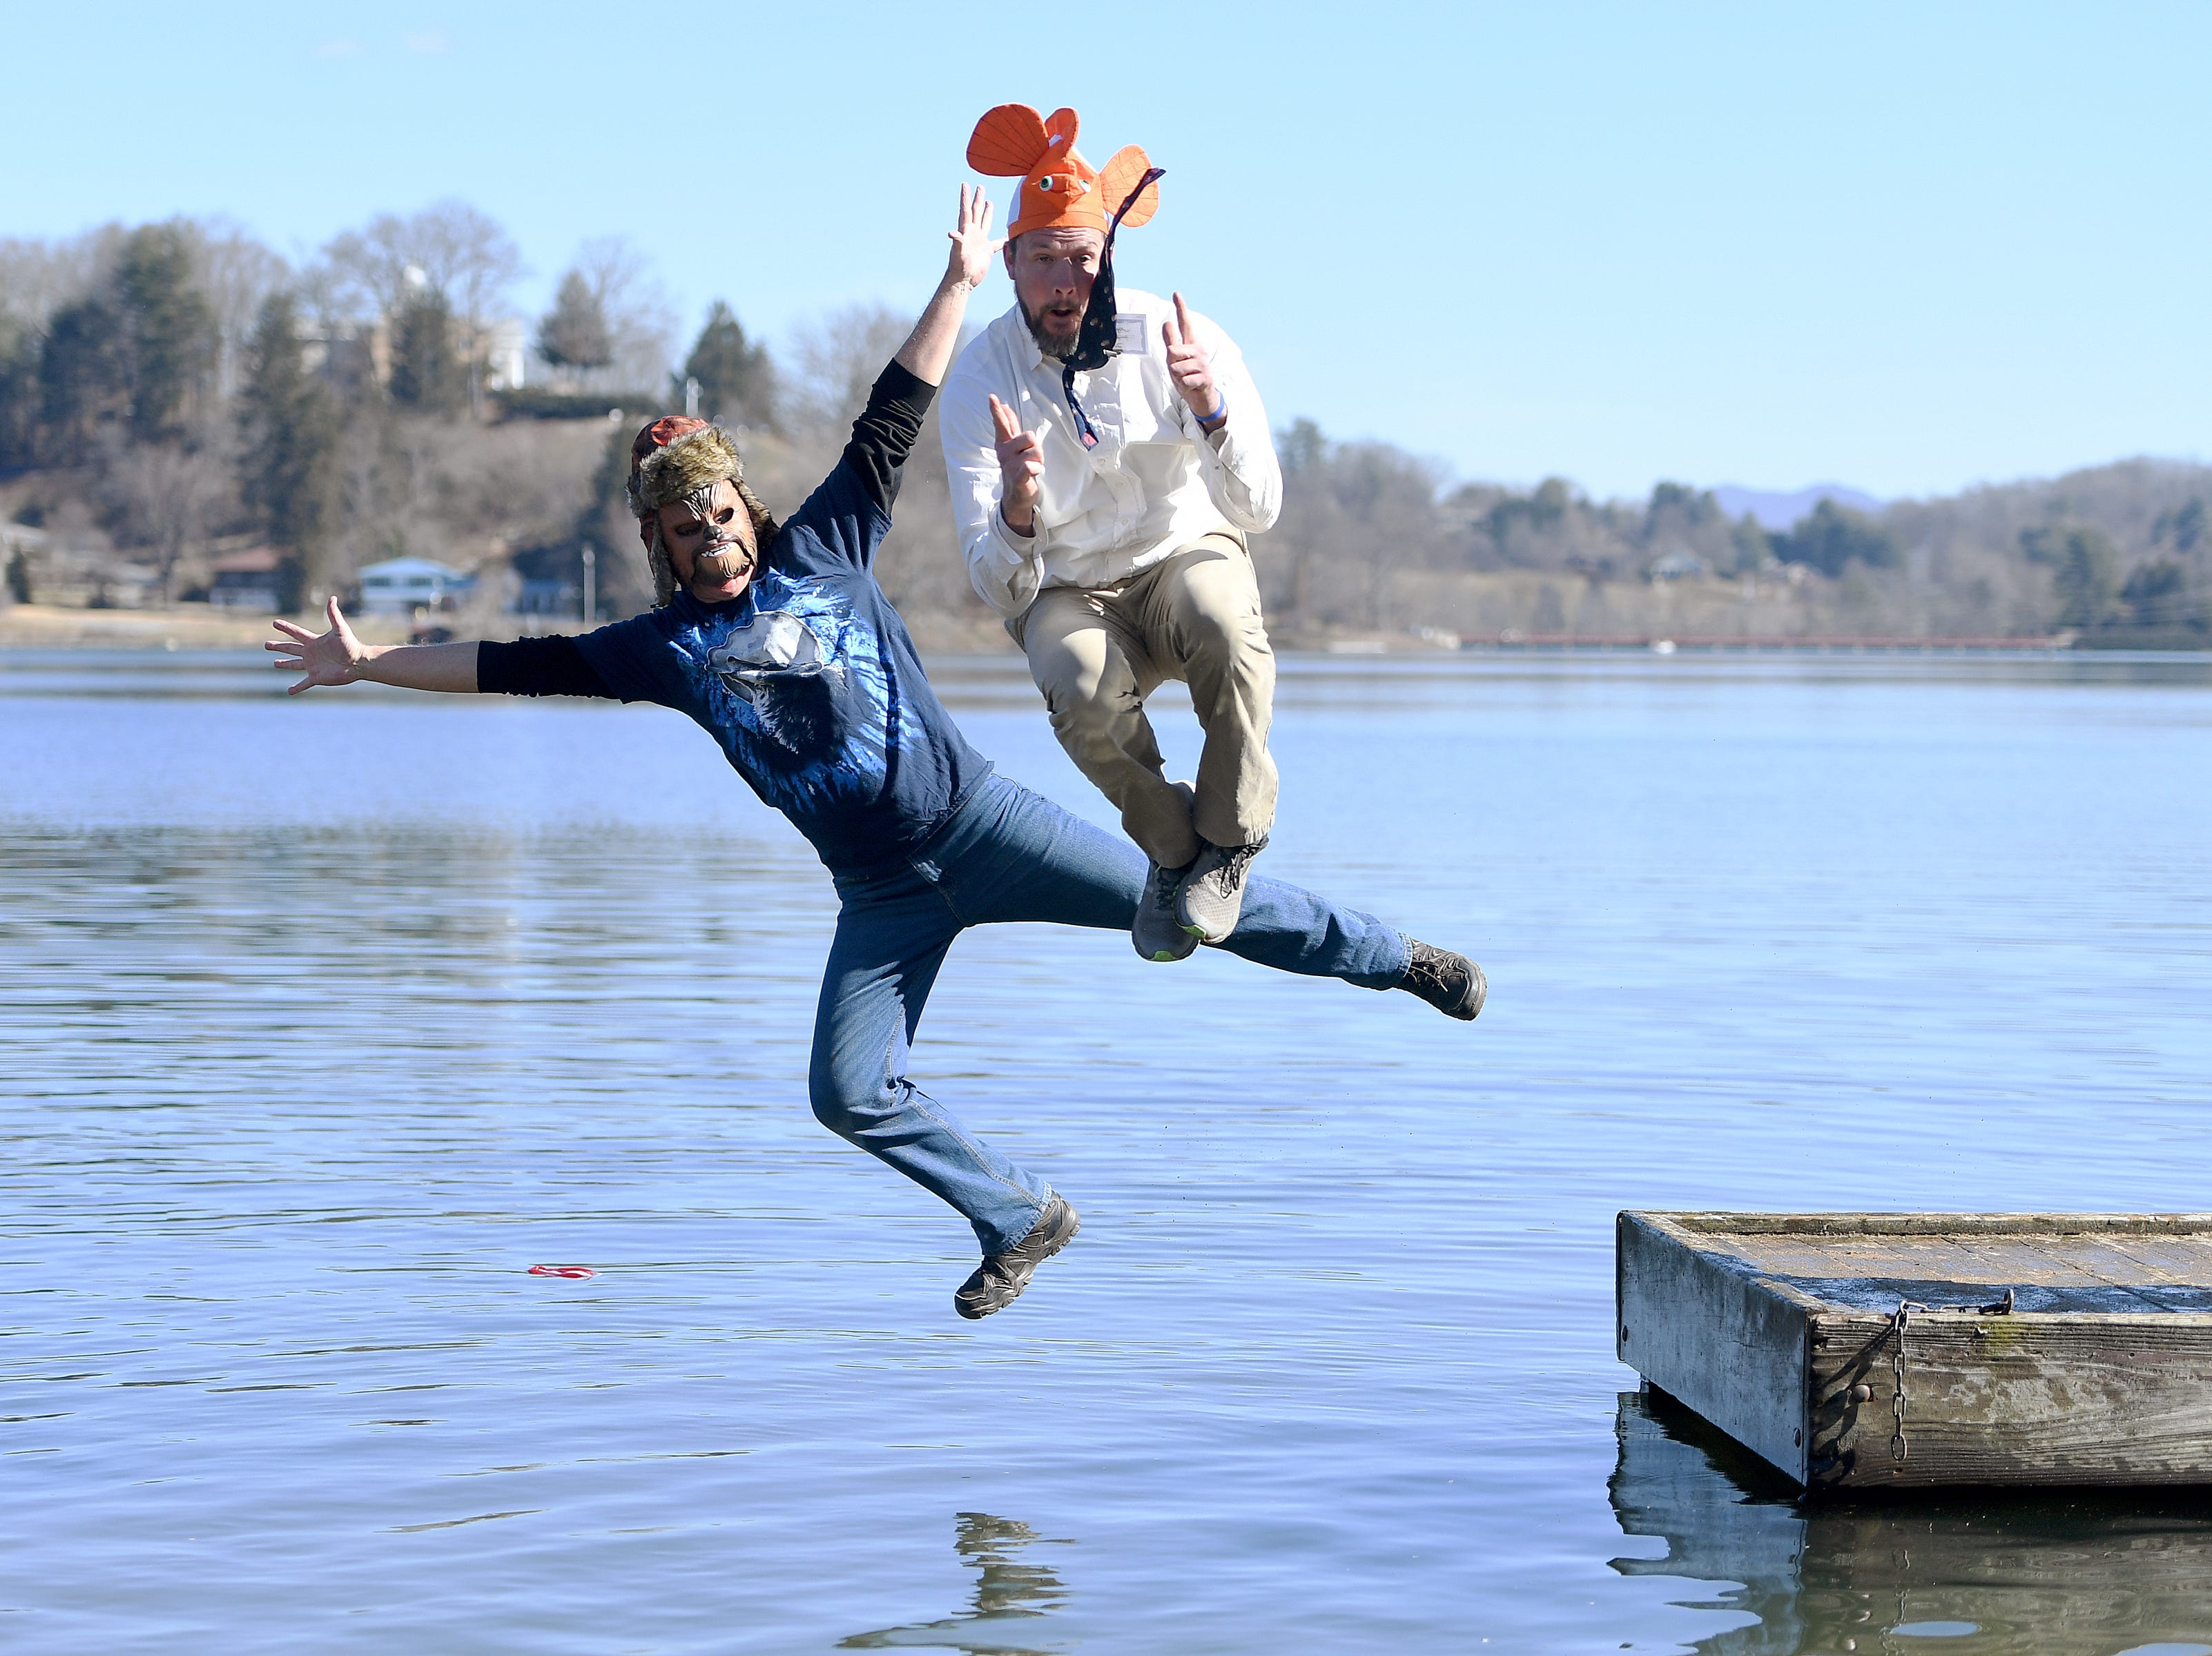 Bill Eaker, left, chair of the fundraising committee of Haywood Waterways, and Eric Romaniszyn, executive director of the non-profit, are the last ones to leap into the chilly waters of Lake Junaluska during the 7th Annual Plunge at Lake Junaluska Conference and Retreat Center on Feb. 2, 2019. The event raised more than $30,000 for Kids in the Creek and environmental education.